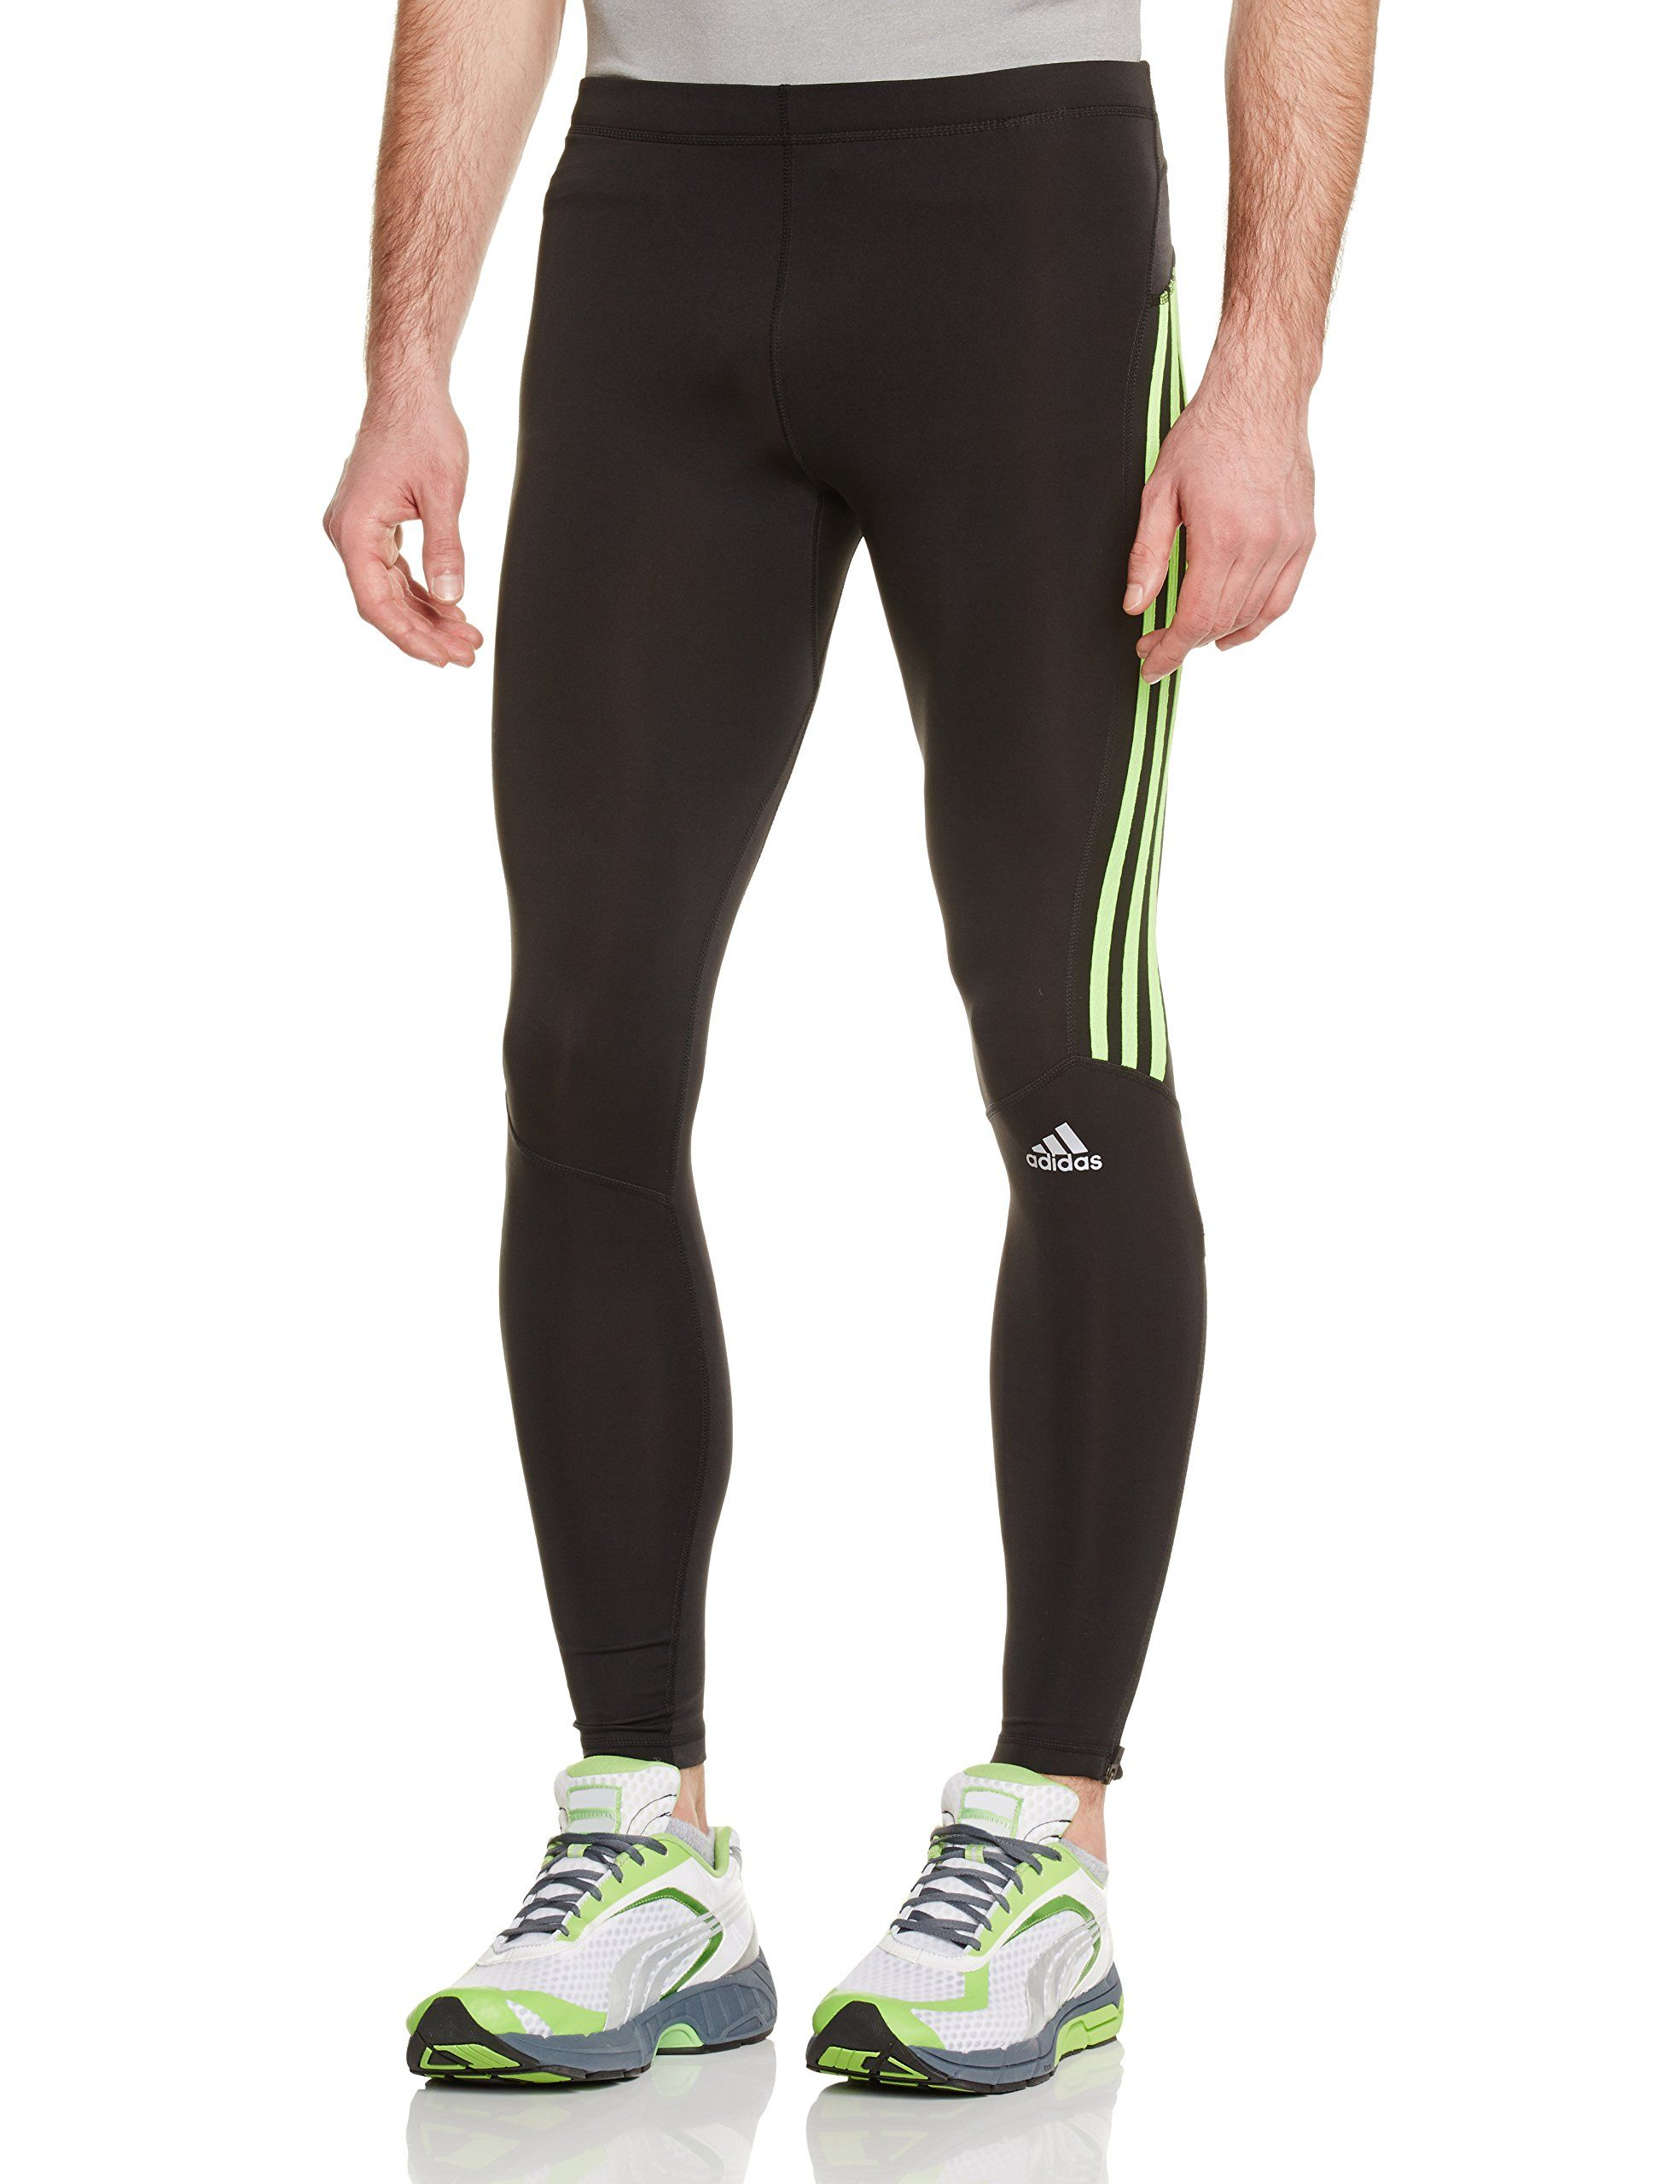 30430806974f3 adidas Men's Response Long Tight: Amazon.co.uk: Sports & Outdoors ...